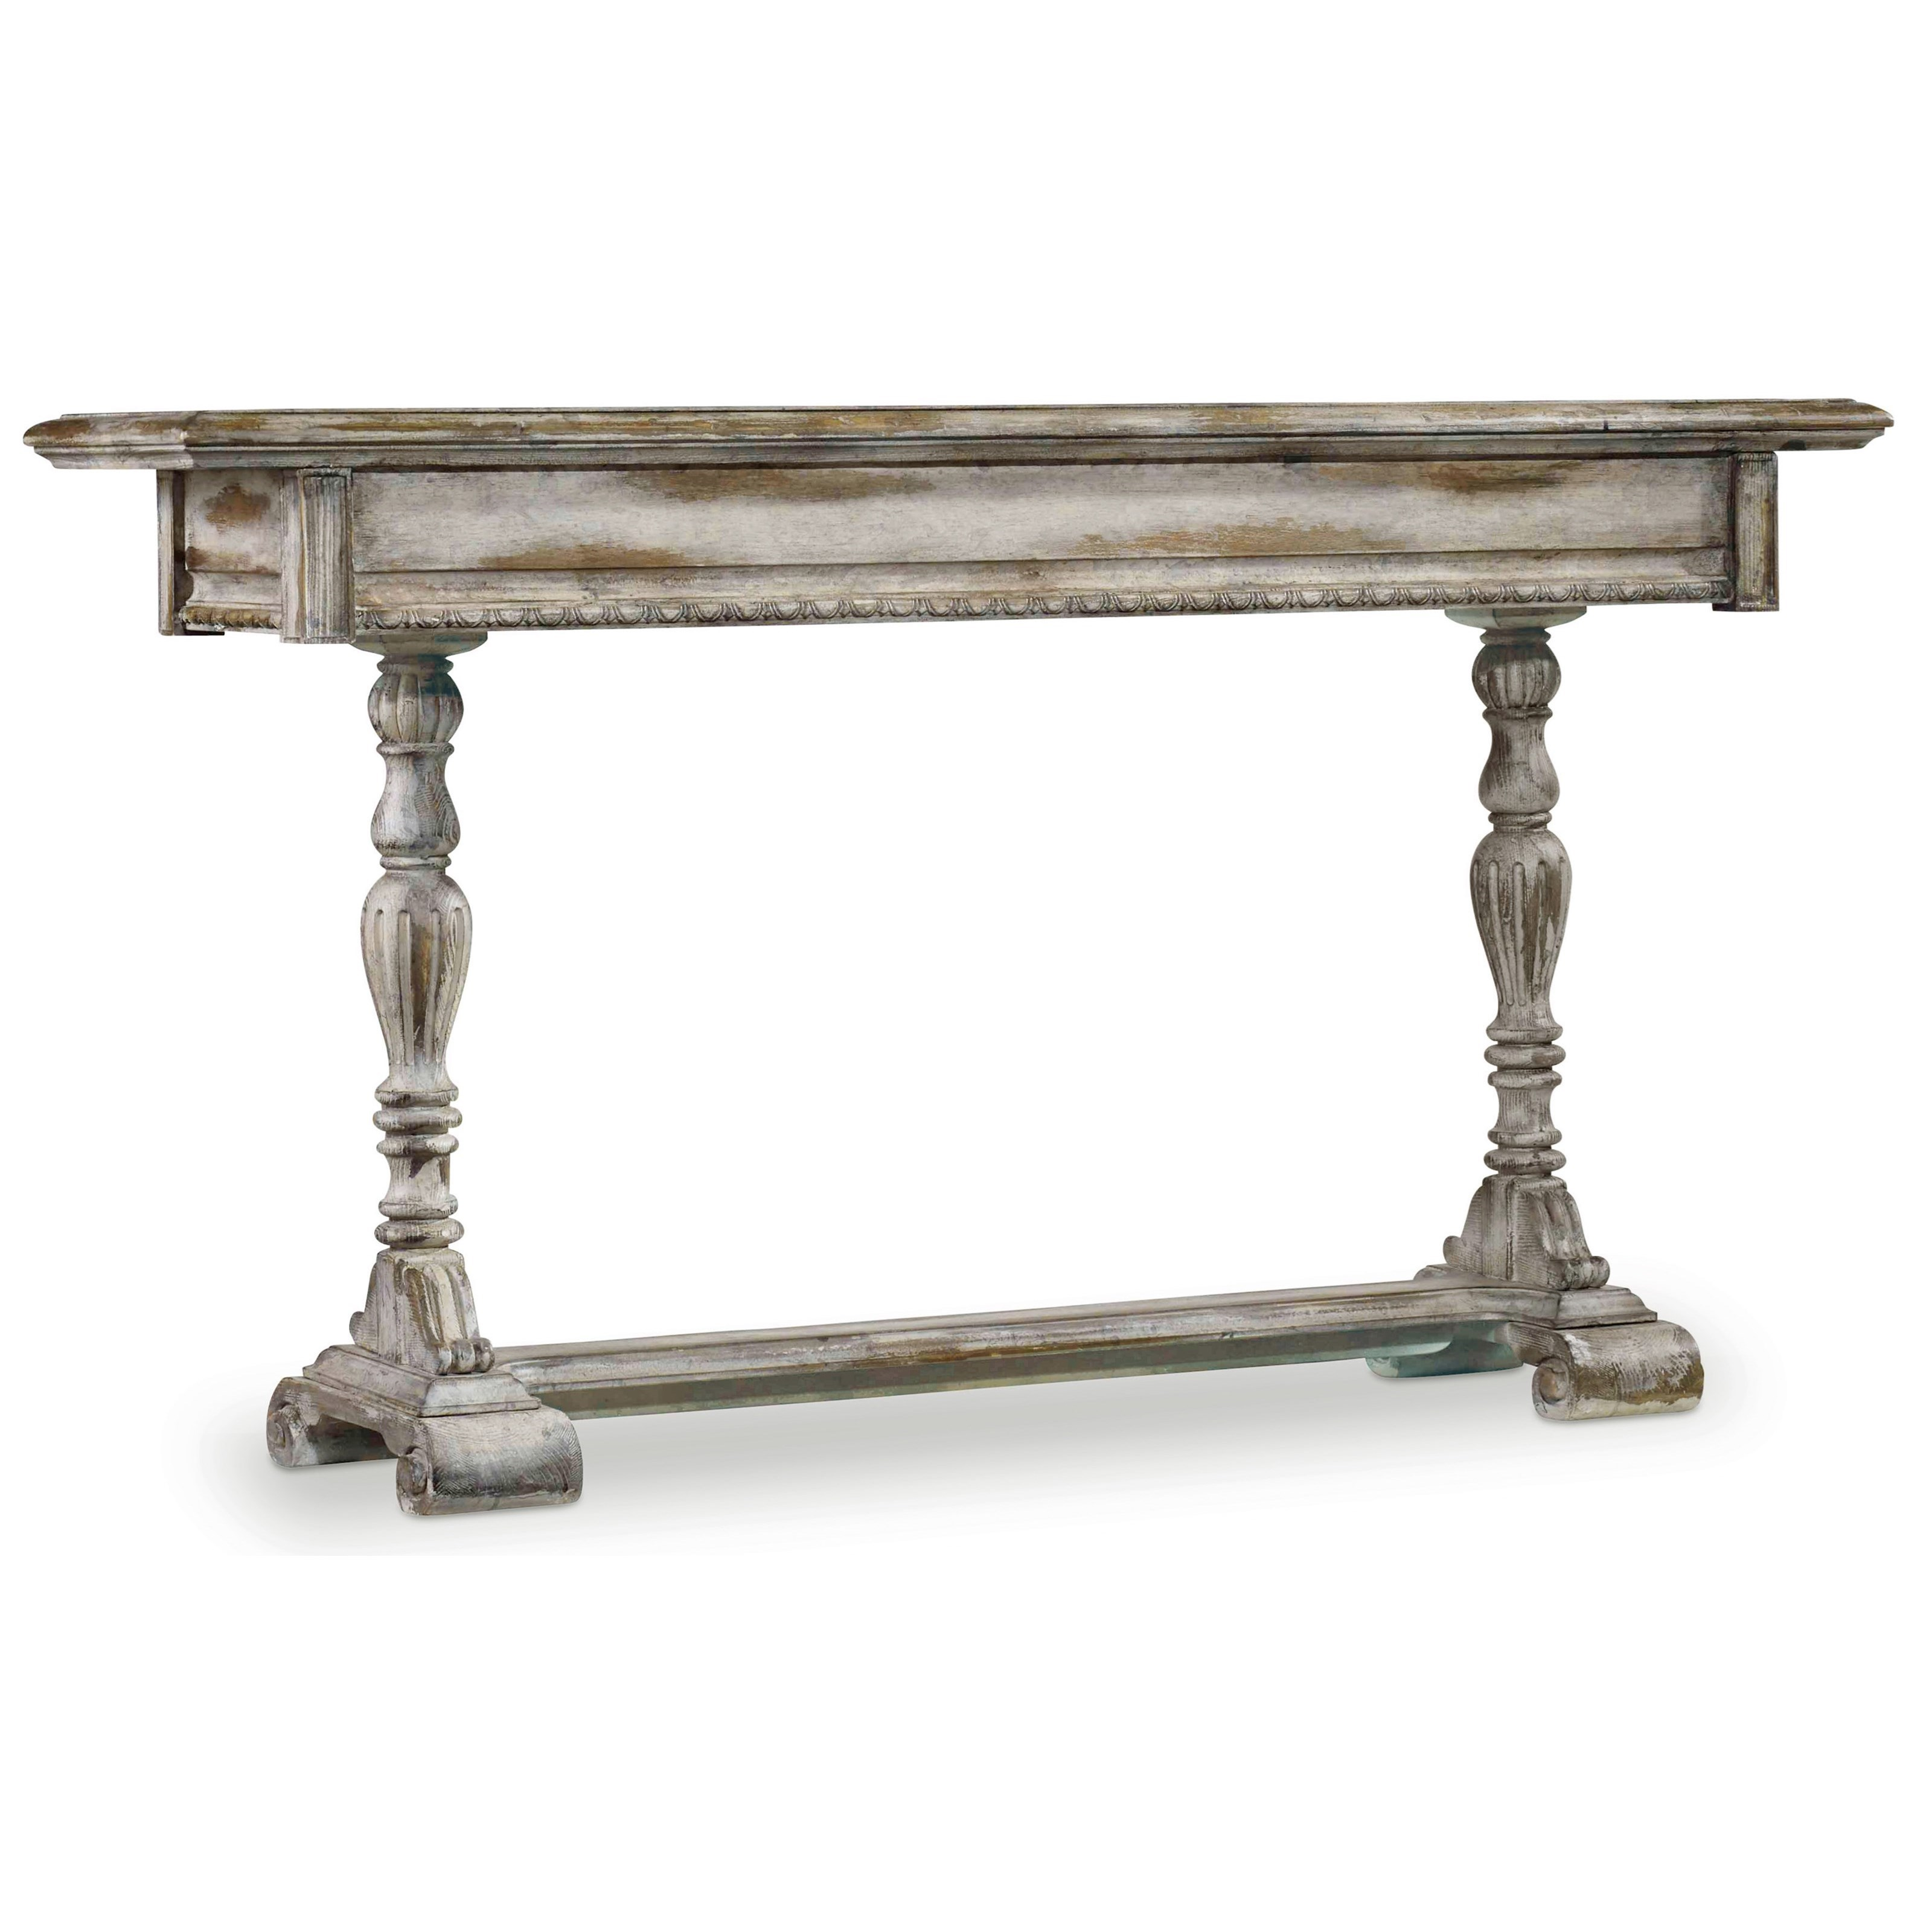 Hamilton Home Chatelet Skinny Console - Item Number: 5853-85001